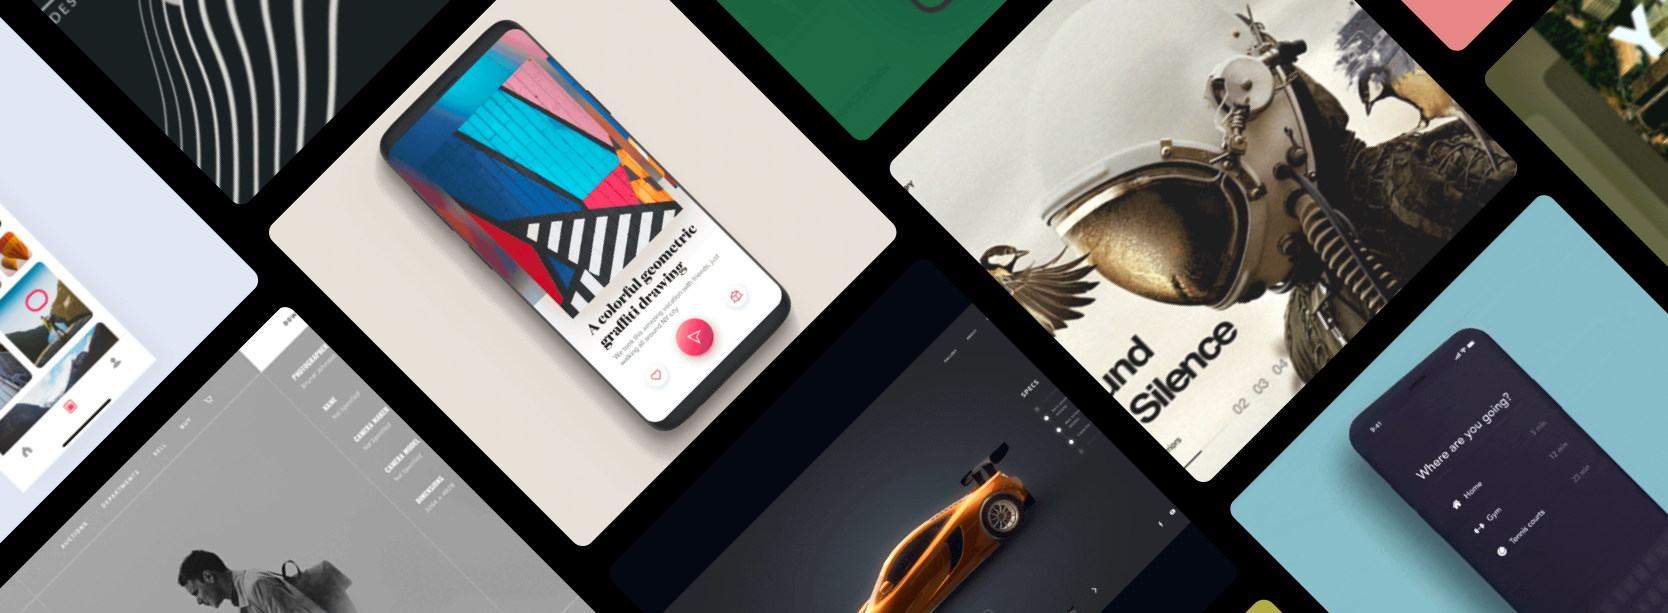 Navigation app, AR picture, Transition effects and more… Weekly interactions roundup! by @usemuzli https://t.co/CbkV15nT9R